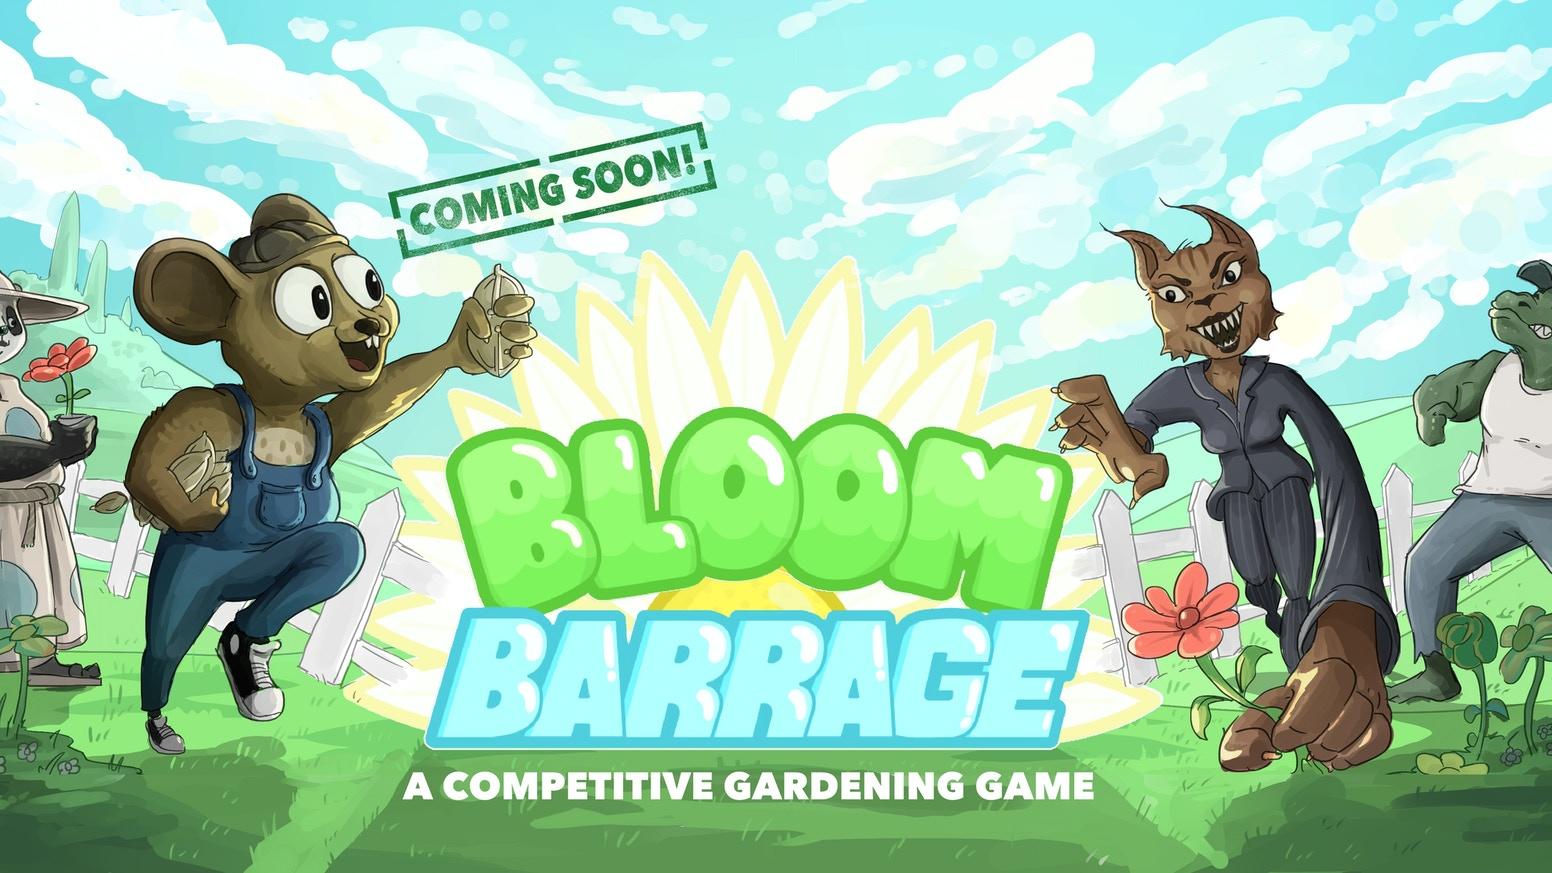 A competitive gardening game. Plant and throw seeds with friends in a pixel art styled action game!